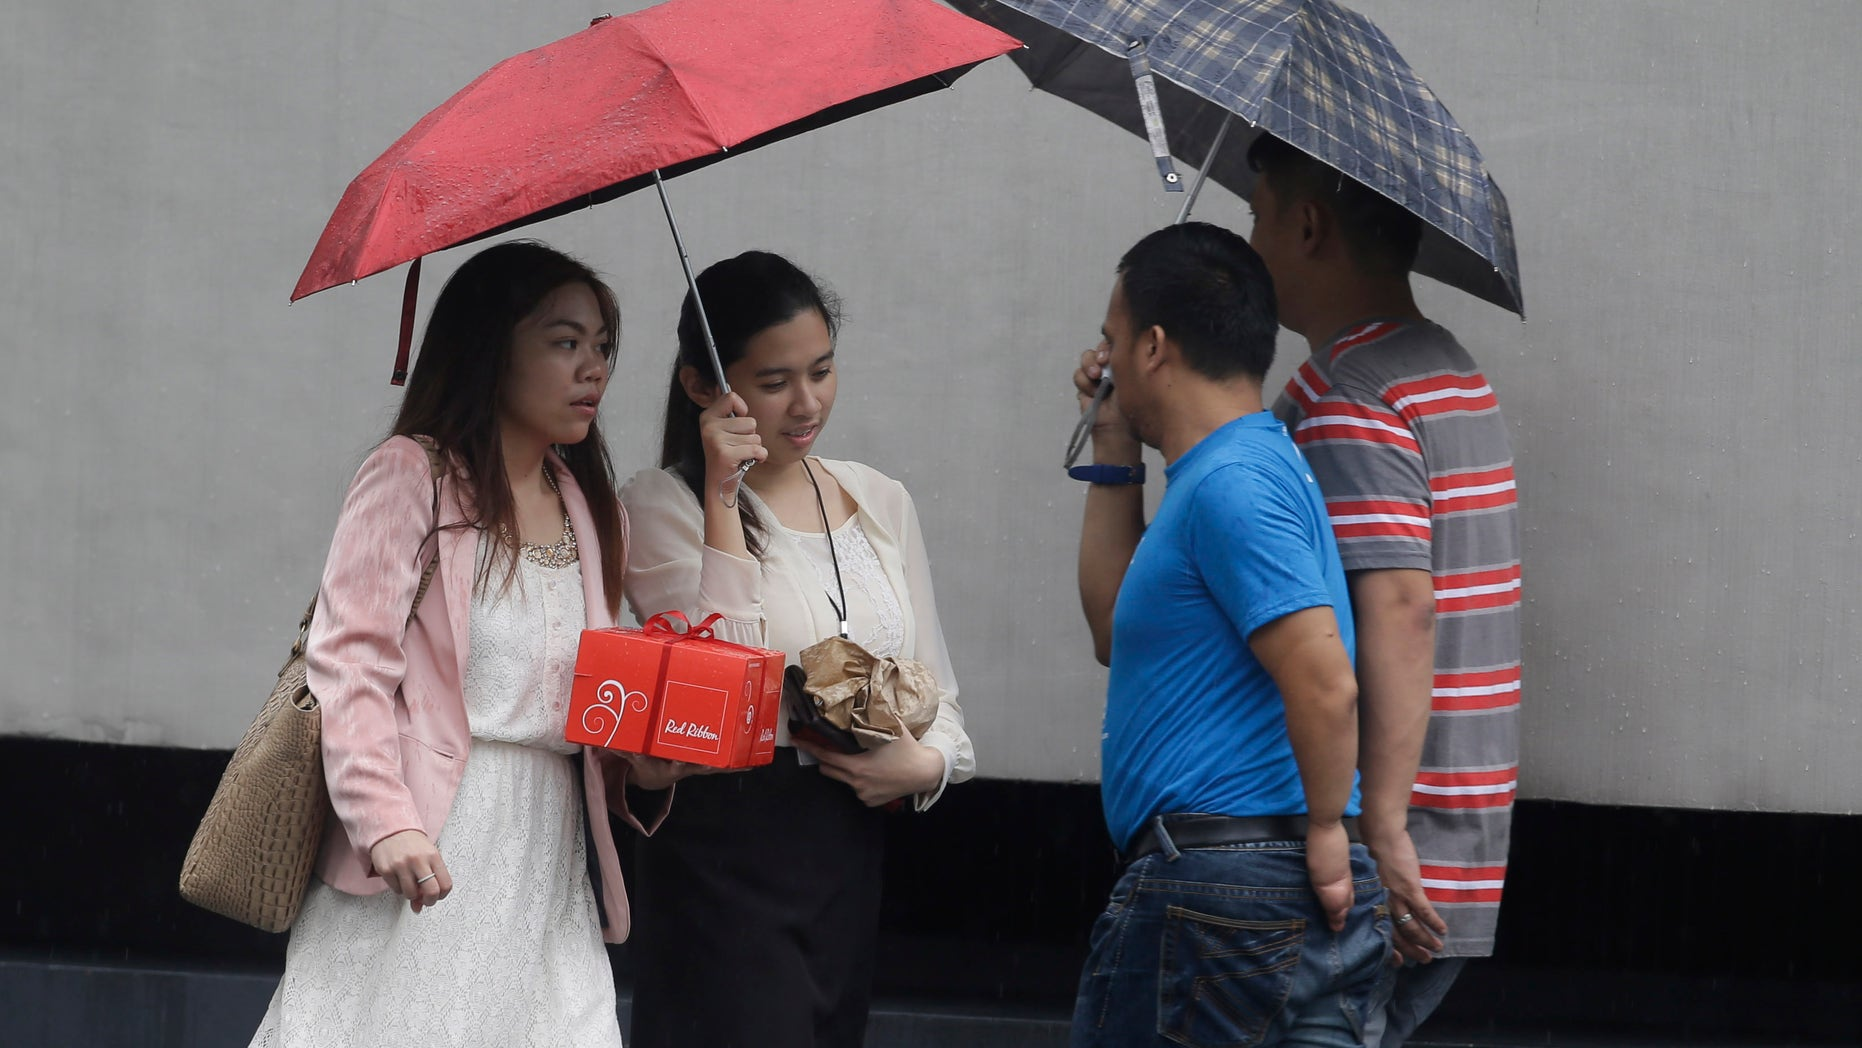 Filipinos use umbrellas as they go on their daily business at the financial district of Makati city east of Manila, Philippines under a slight rain Friday Oct. 11, 2013. A tropical storm barreling toward the northern Philippines on Friday intensified into a typhoon with destructive winds and flooding rains threatening farmlands and populated areas, including the capital Manila. Typhoon Nari forced U.S. Secretary of State John Kerry to call off Friday's trip to the Philippines. (AP Photo/Bullit Marquez)